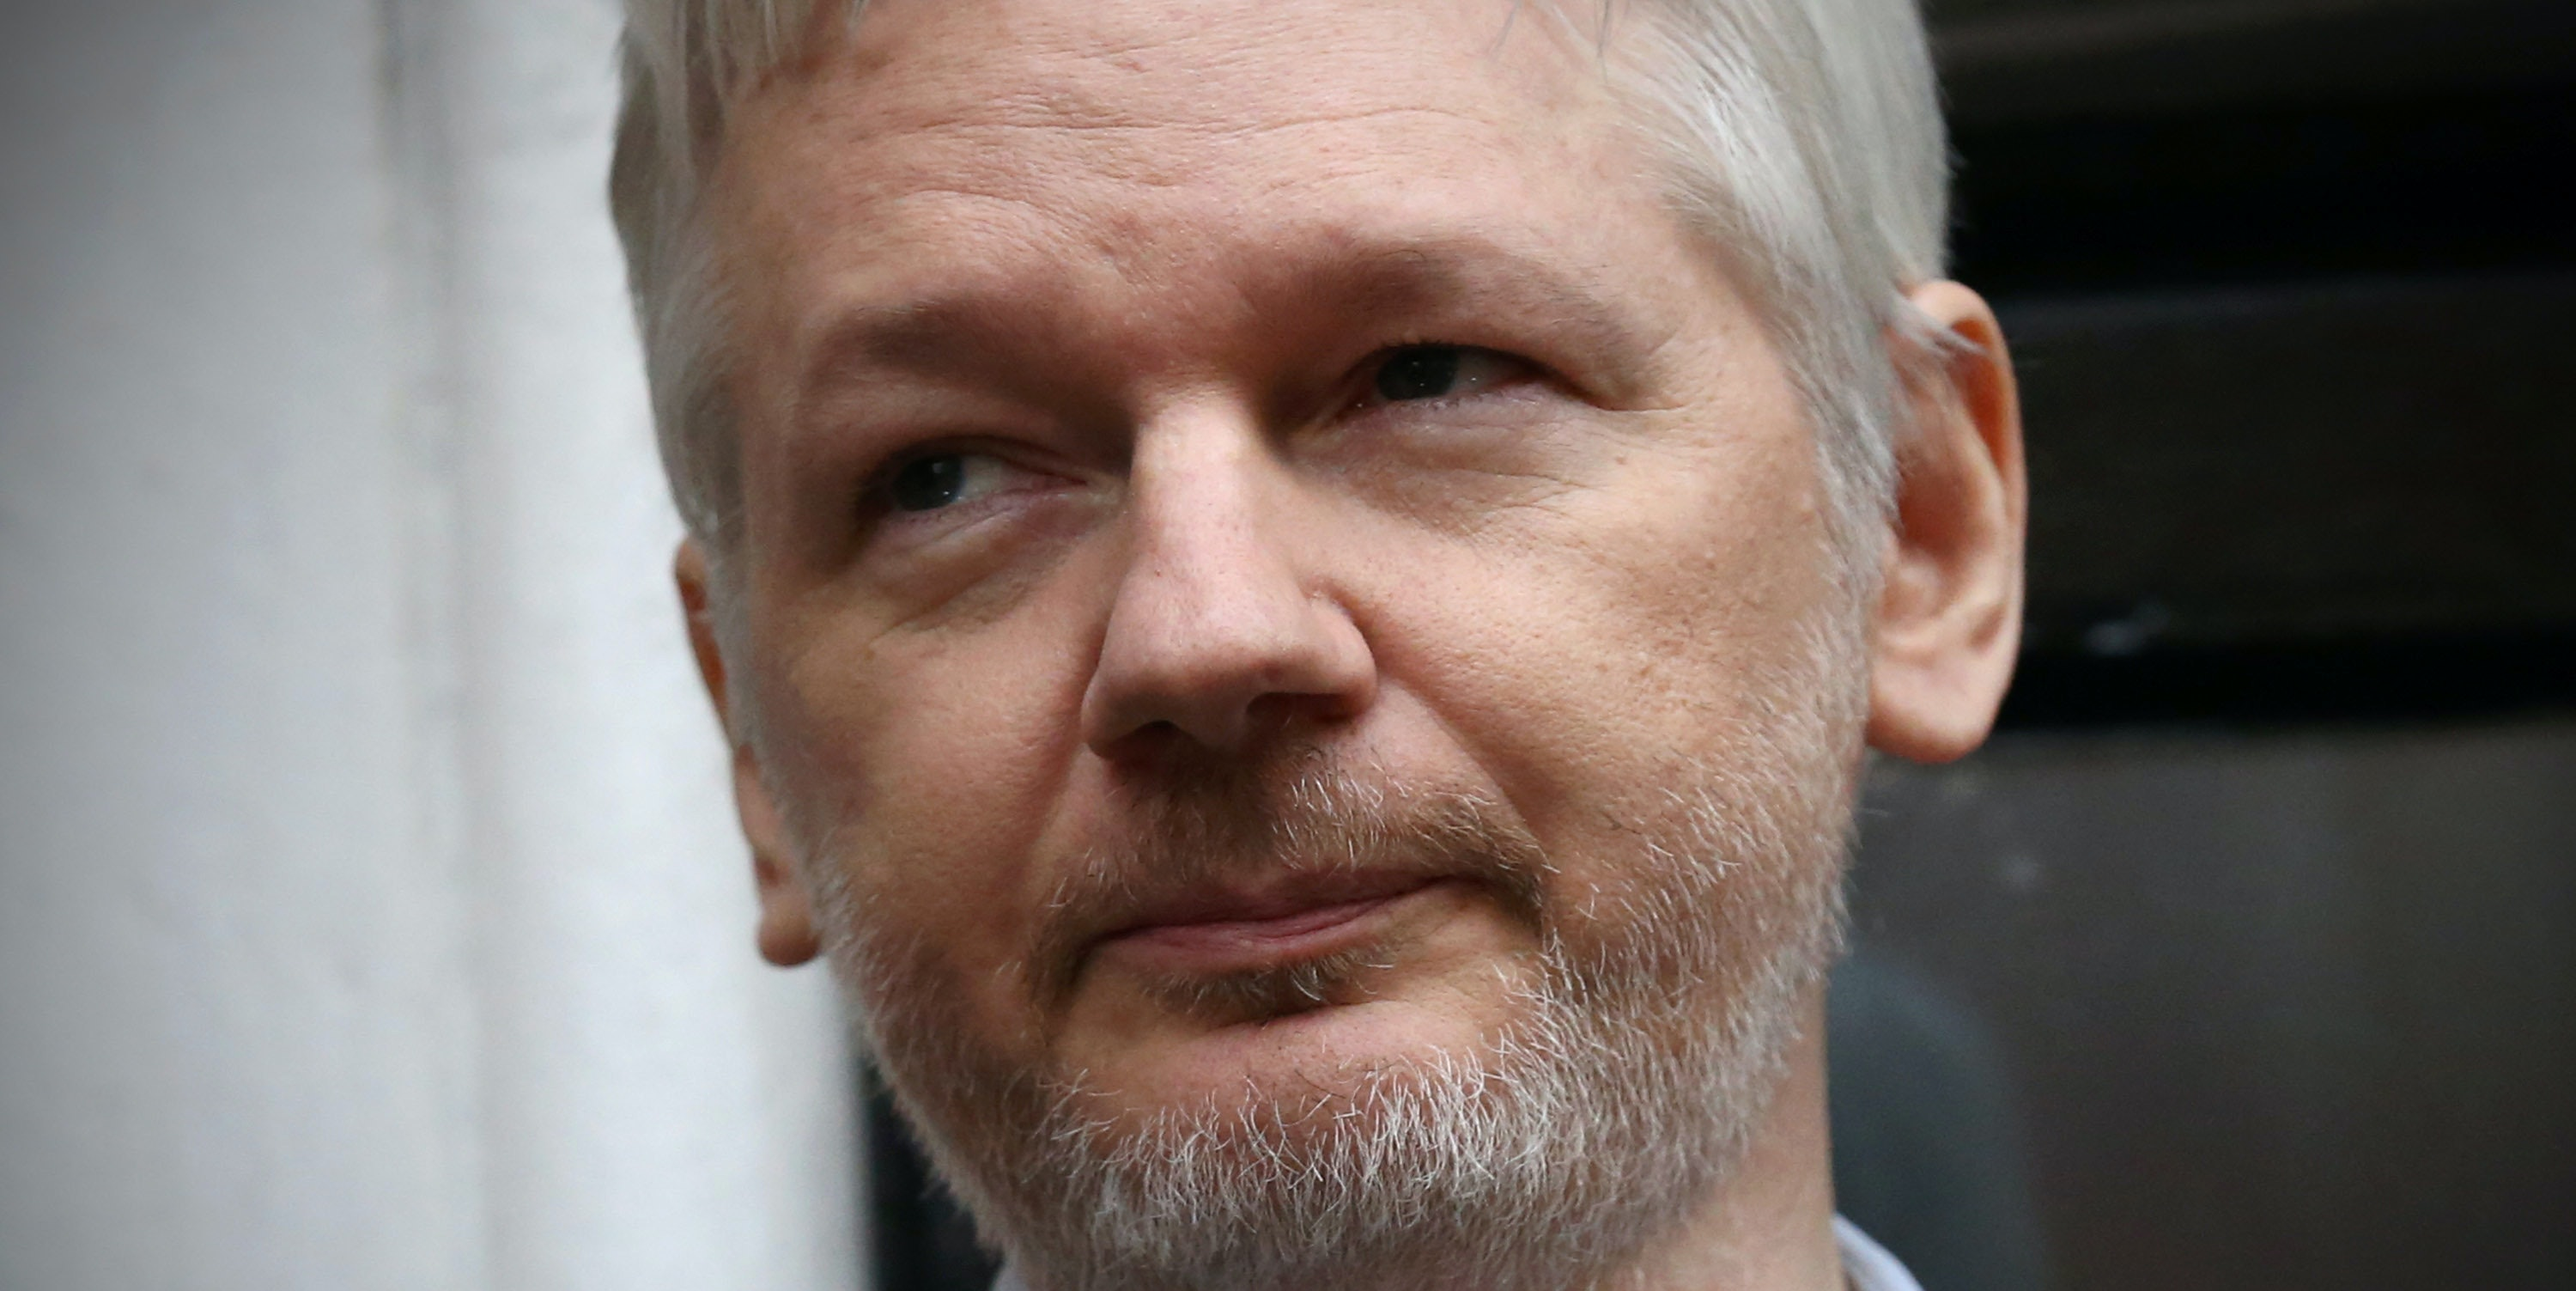 LONDON, ENGLAND - FEBRUARY 05:  Wikileaks founder Julian Assange speaks from the balcony of the Ecuadorian embassy where  he continues to seek asylum following an extradition request from Sweden in 2012, on February 5, 2016 in London, England. The United Nations Working Group on Arbitrary Detention has insisted that Mr Assange's detention should be brought to an end.  (Photo by Carl Court/Getty Images)